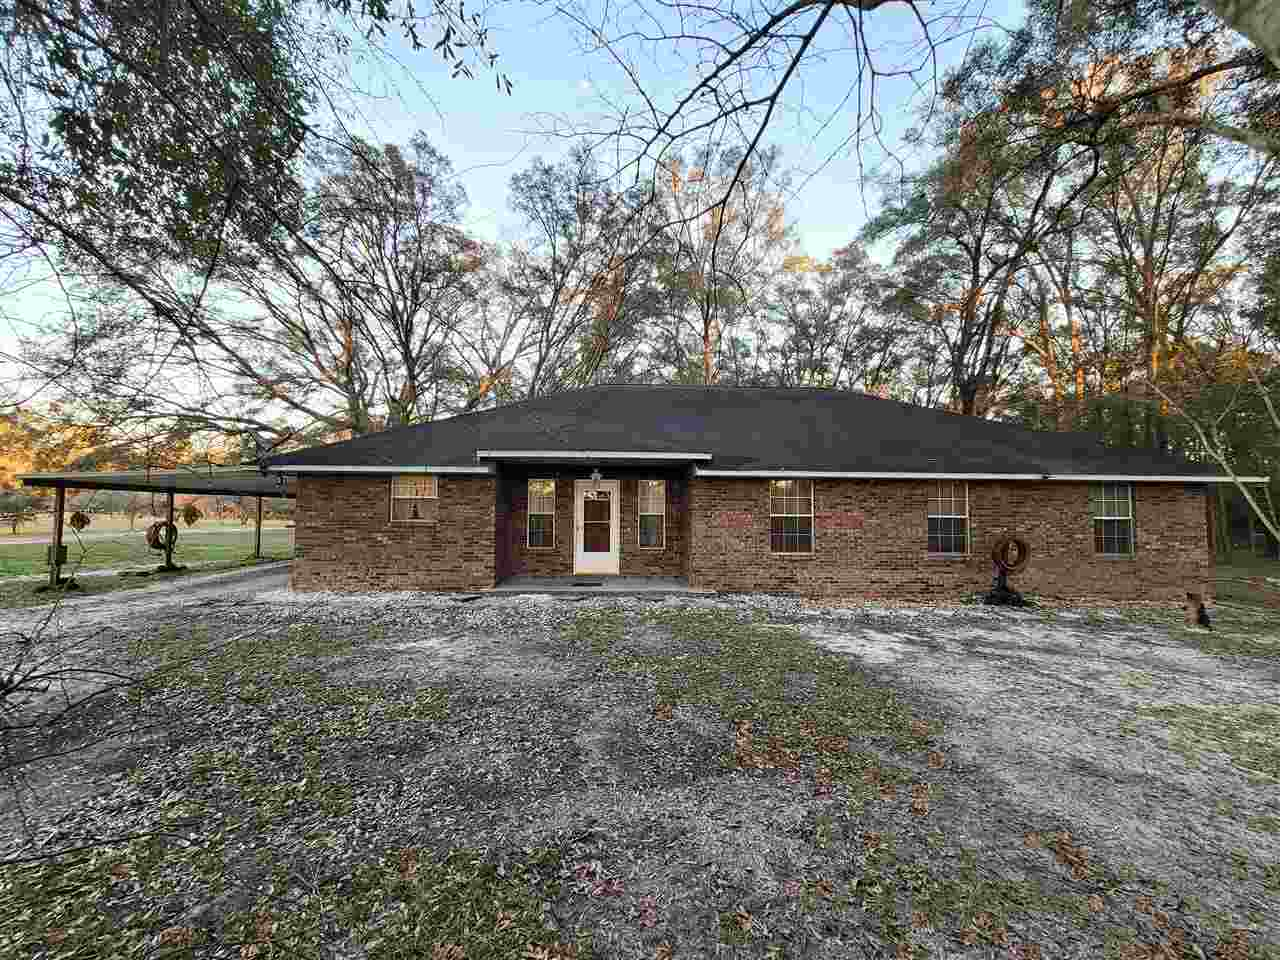 Welcome Home to the peace and quiet of country living. This property is minutes from the Suwannee River, Little River Springs, Royal Springs Park and only 10 minutes from the quaint town of Branford and 30 minutes from Lake City. This well-built, 5 BR 2.5 BA, brick home is nestled on 10 partially wooded acres and is accessible by two entrances. The home features an open kitchen, stainless steel appliances with a breakfast bar overlooking the dining and living room area. Spacious bedrooms, with ample storage, an interior laundry room with a separate entrance, makes this home the perfect space. This home includes a 60 x 60 workshop, with a recreational game space, pool table, bar and full bathroom. Additionally, there is a 10x16 well/pump house and a 10x12 storage shed. This property has a well, large holding tank and water filtration system. The land itself contains cleared areas, for a clean open space around the home and buildings, the back portion has been left in its natural state, creating an excellent place to enjoy the abundant wildlife.  This home is NOT in a flood zone!